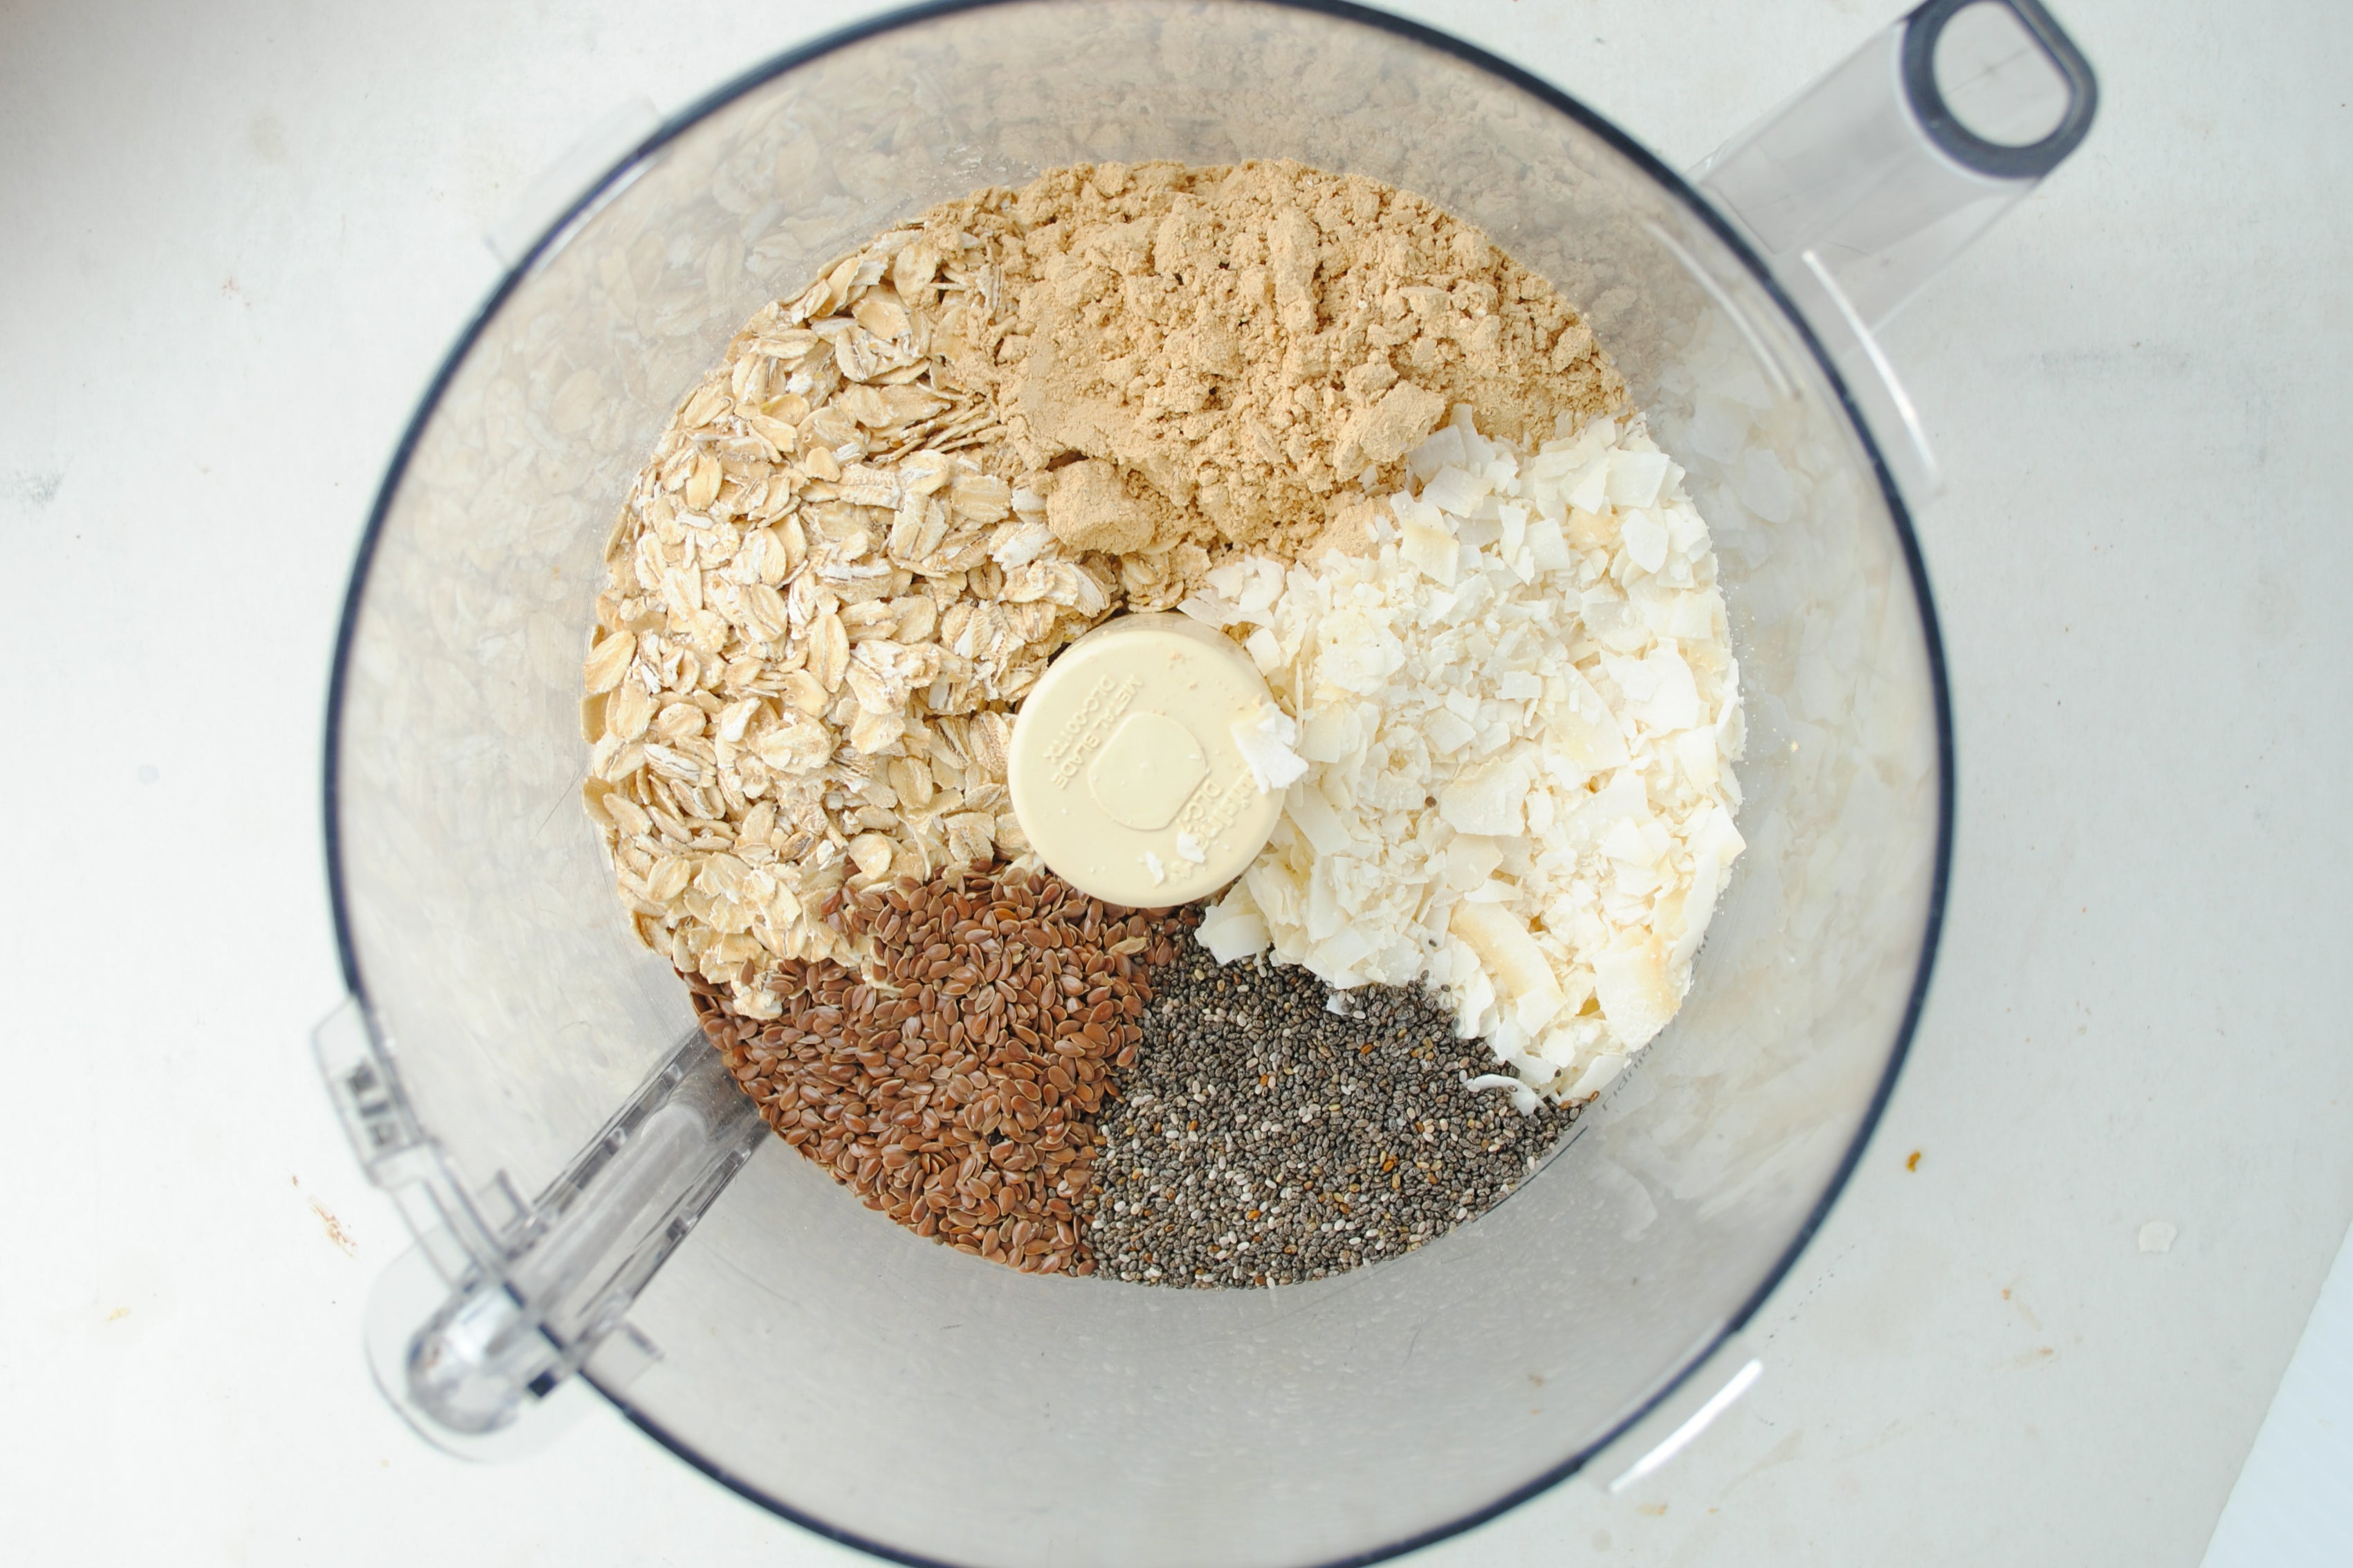 Peanut Butter Coconut Energy Balls Ingredients - Mighty Nut Flax & Chia powdered peanut butter